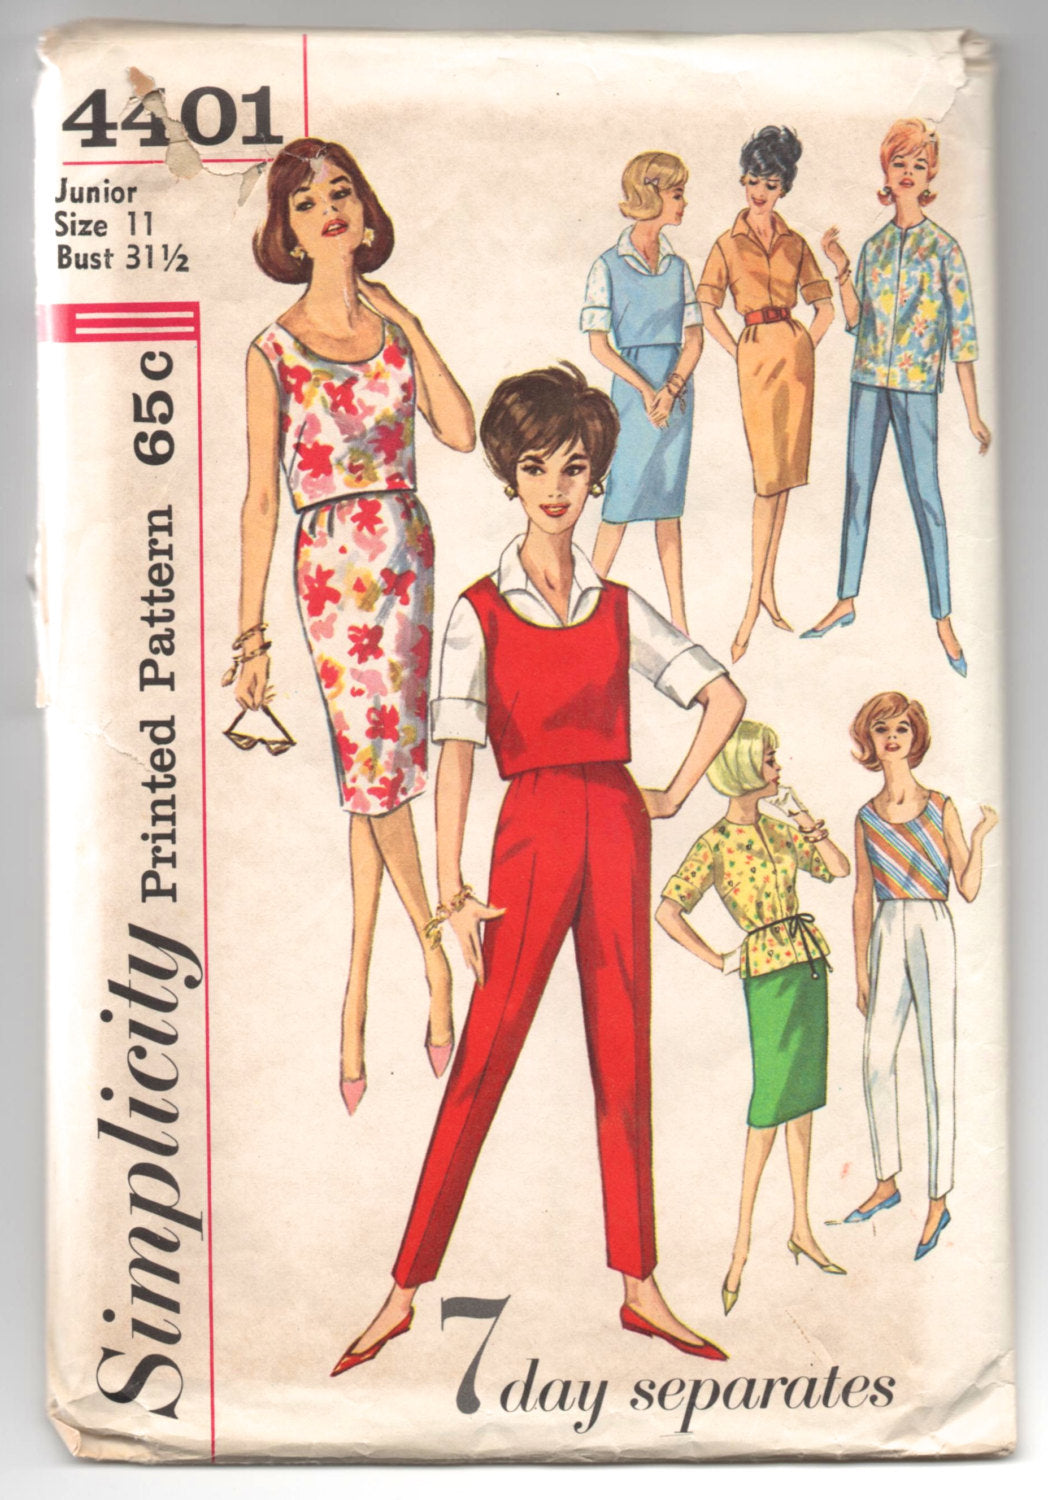 1960's Simplicity Seven Days of Separates, Blouse, Skirt, Pants and Top Pattern - Bust 31.5